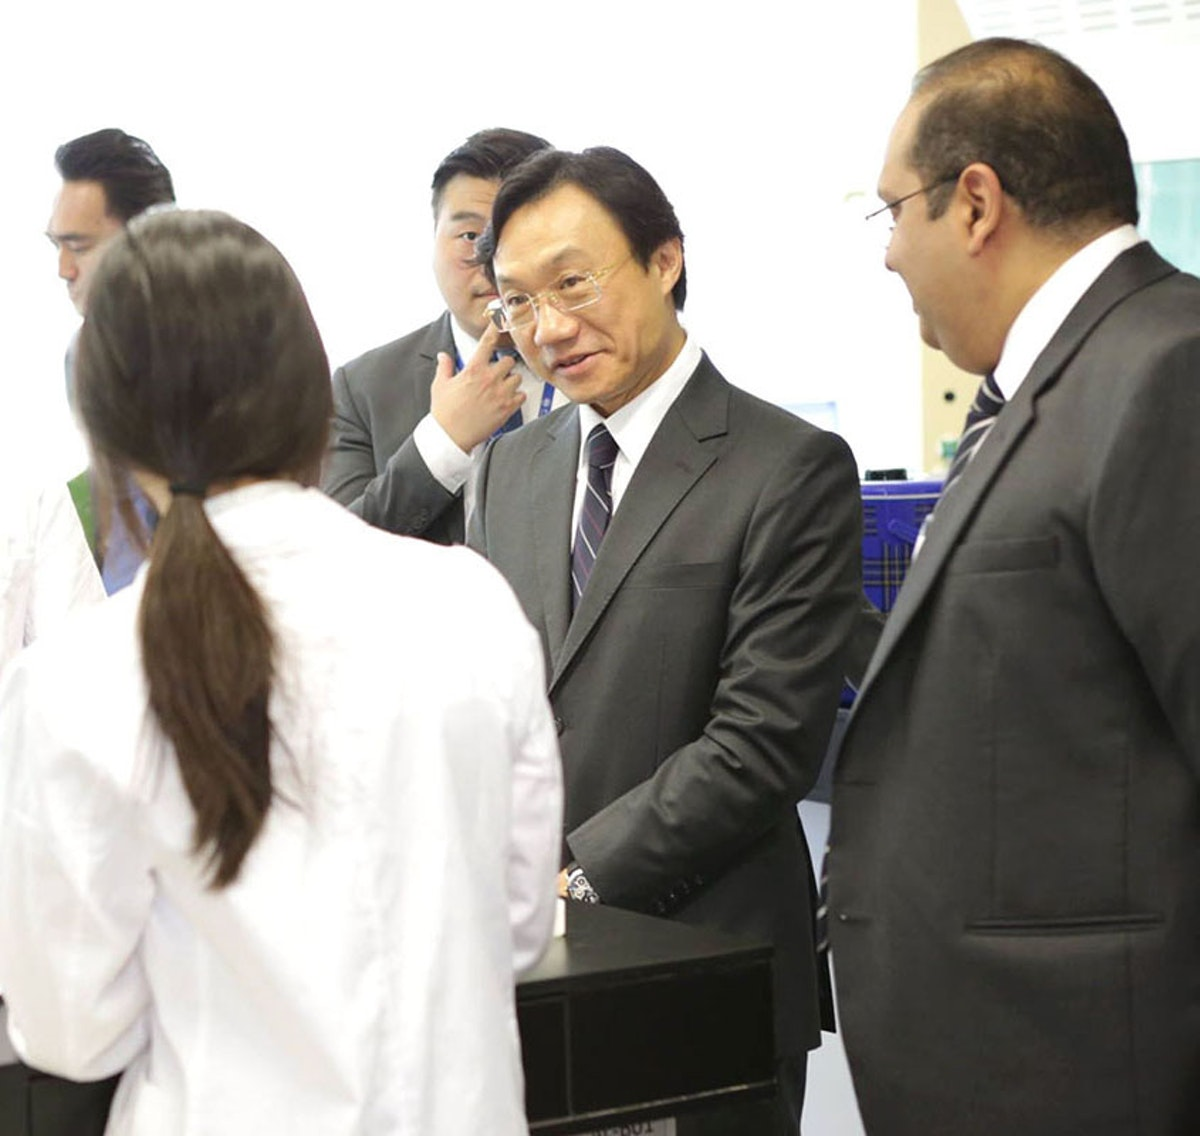 Alexis Tam, Macau's Secretary for Social Affairs and Culture, visited School of the Nations in April 2017. Here Dr. Tam (second from right) visits a high school science laboratory with Vivek Nair (right), the school's director.